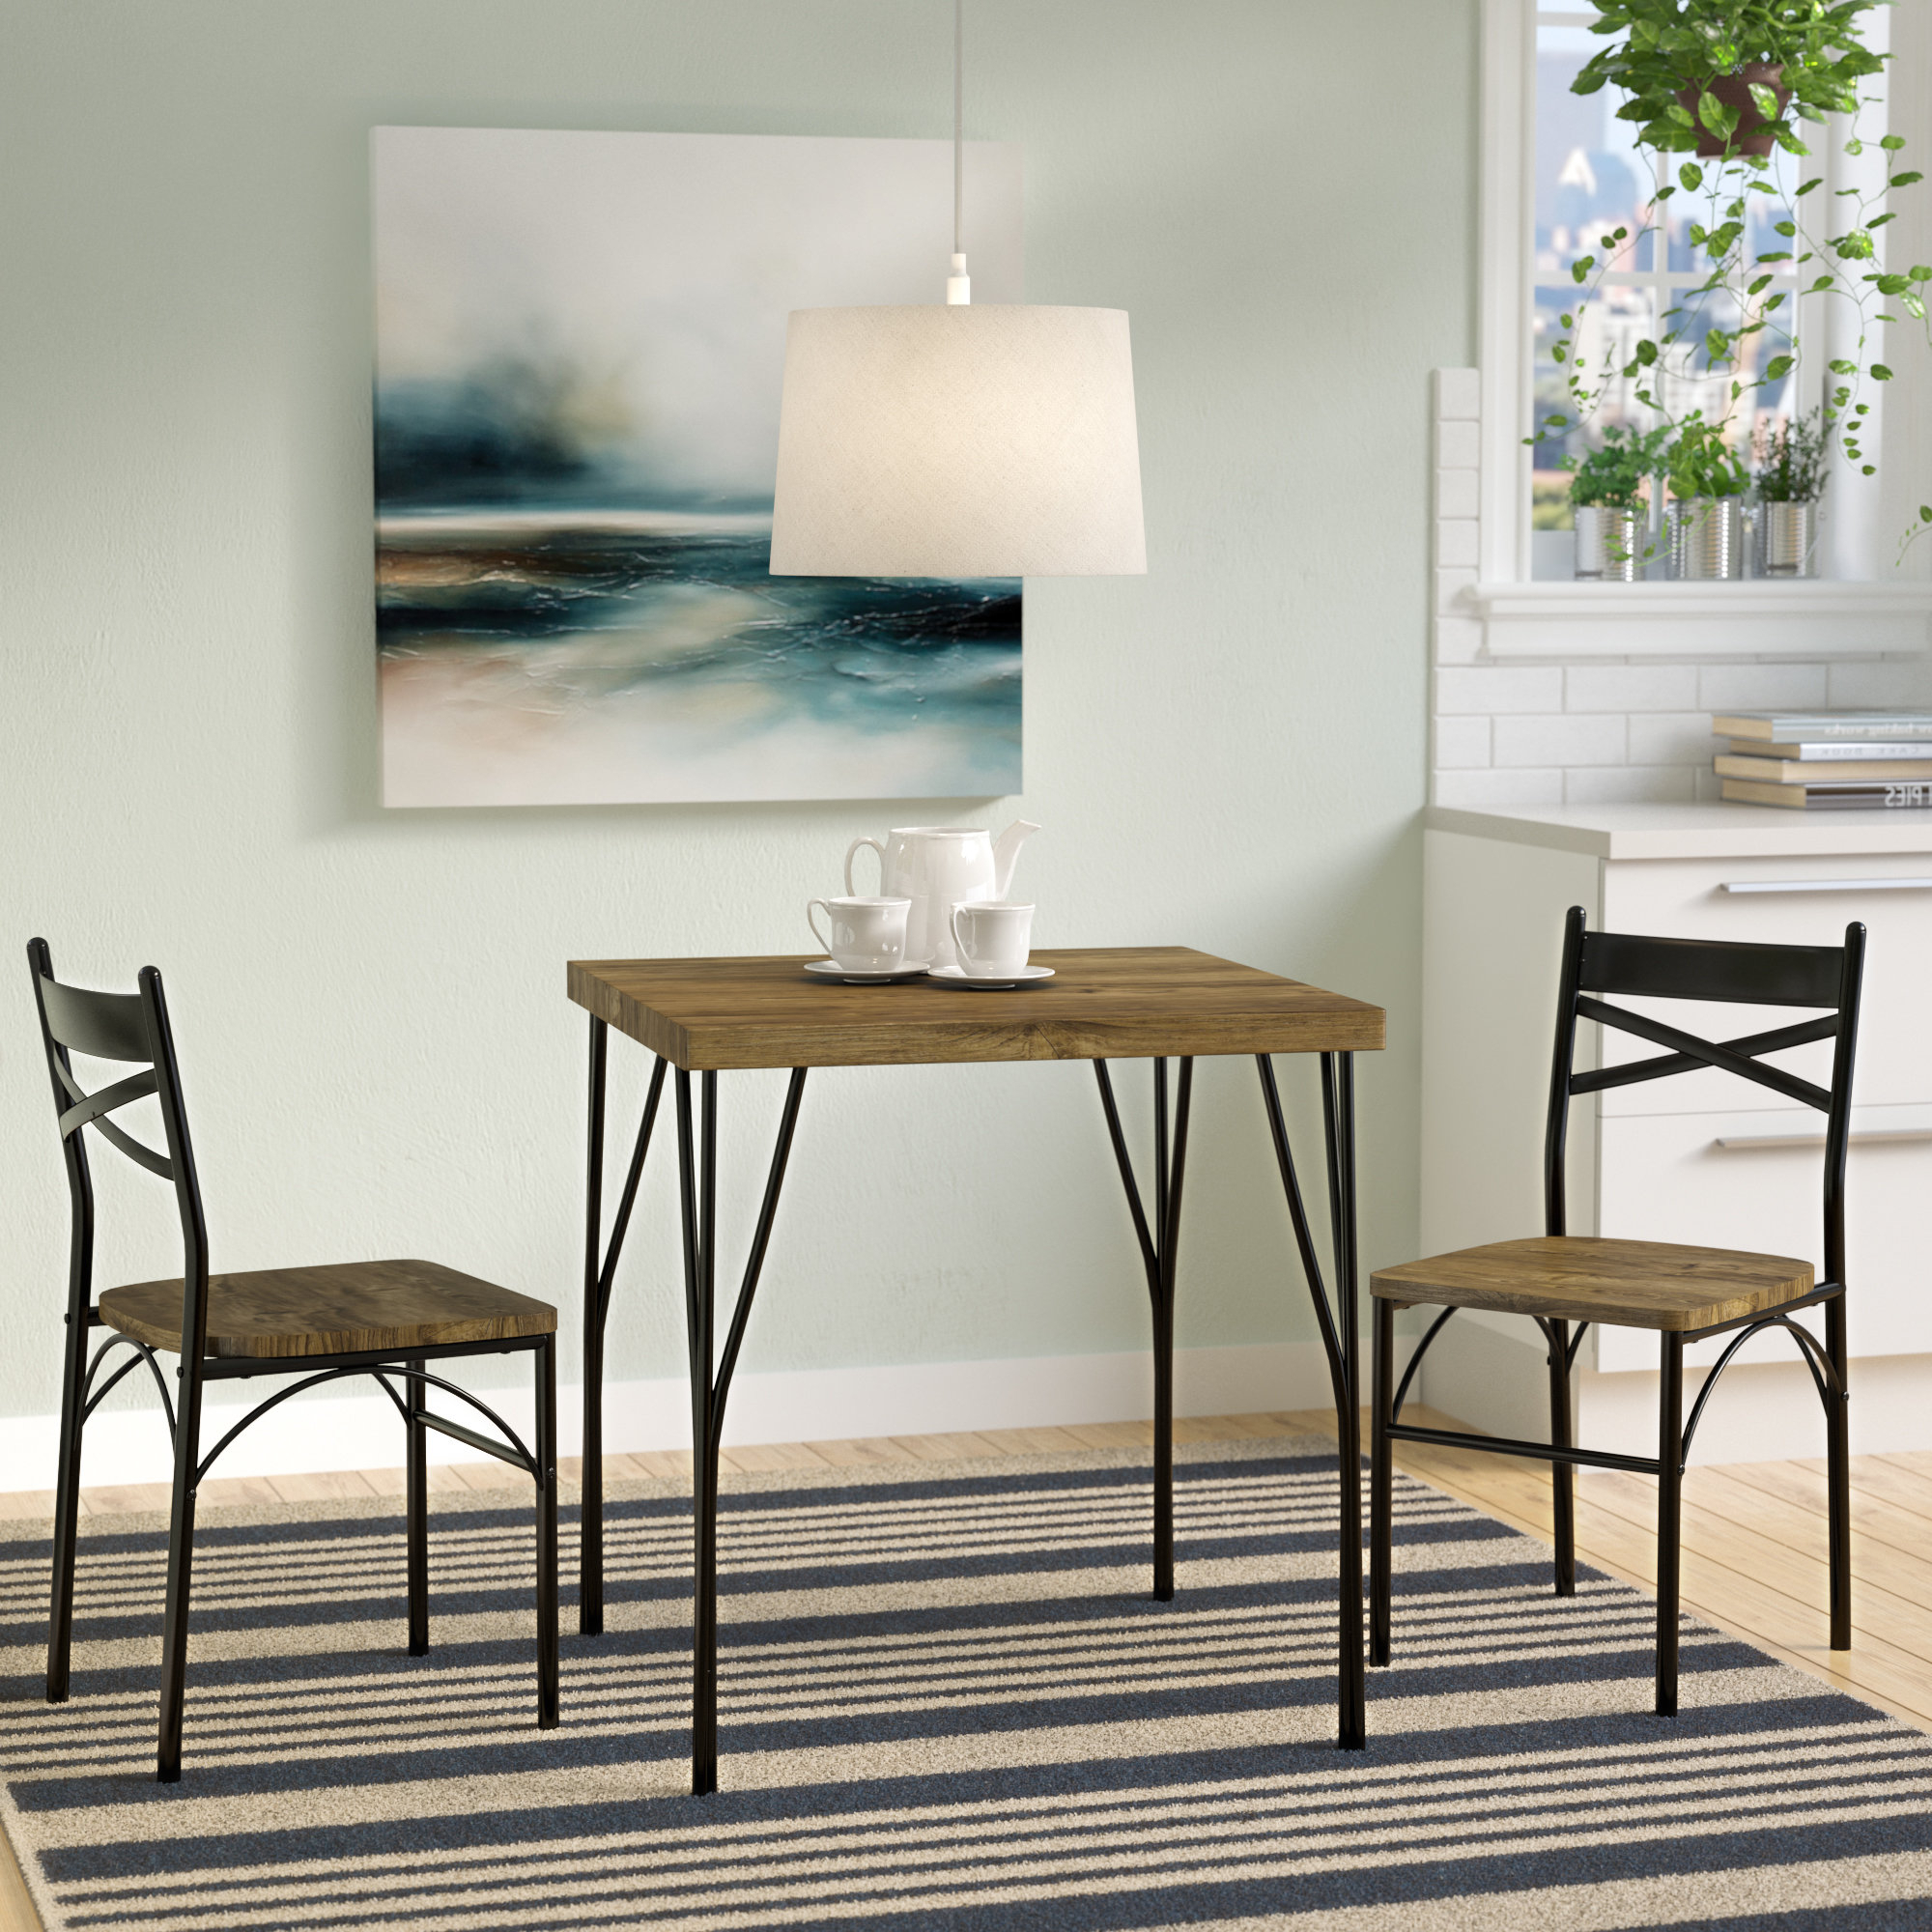 Bedfo 3 Piece Dining Sets Throughout Latest Bedfo 3 Piece Dining Set (Gallery 1 of 20)